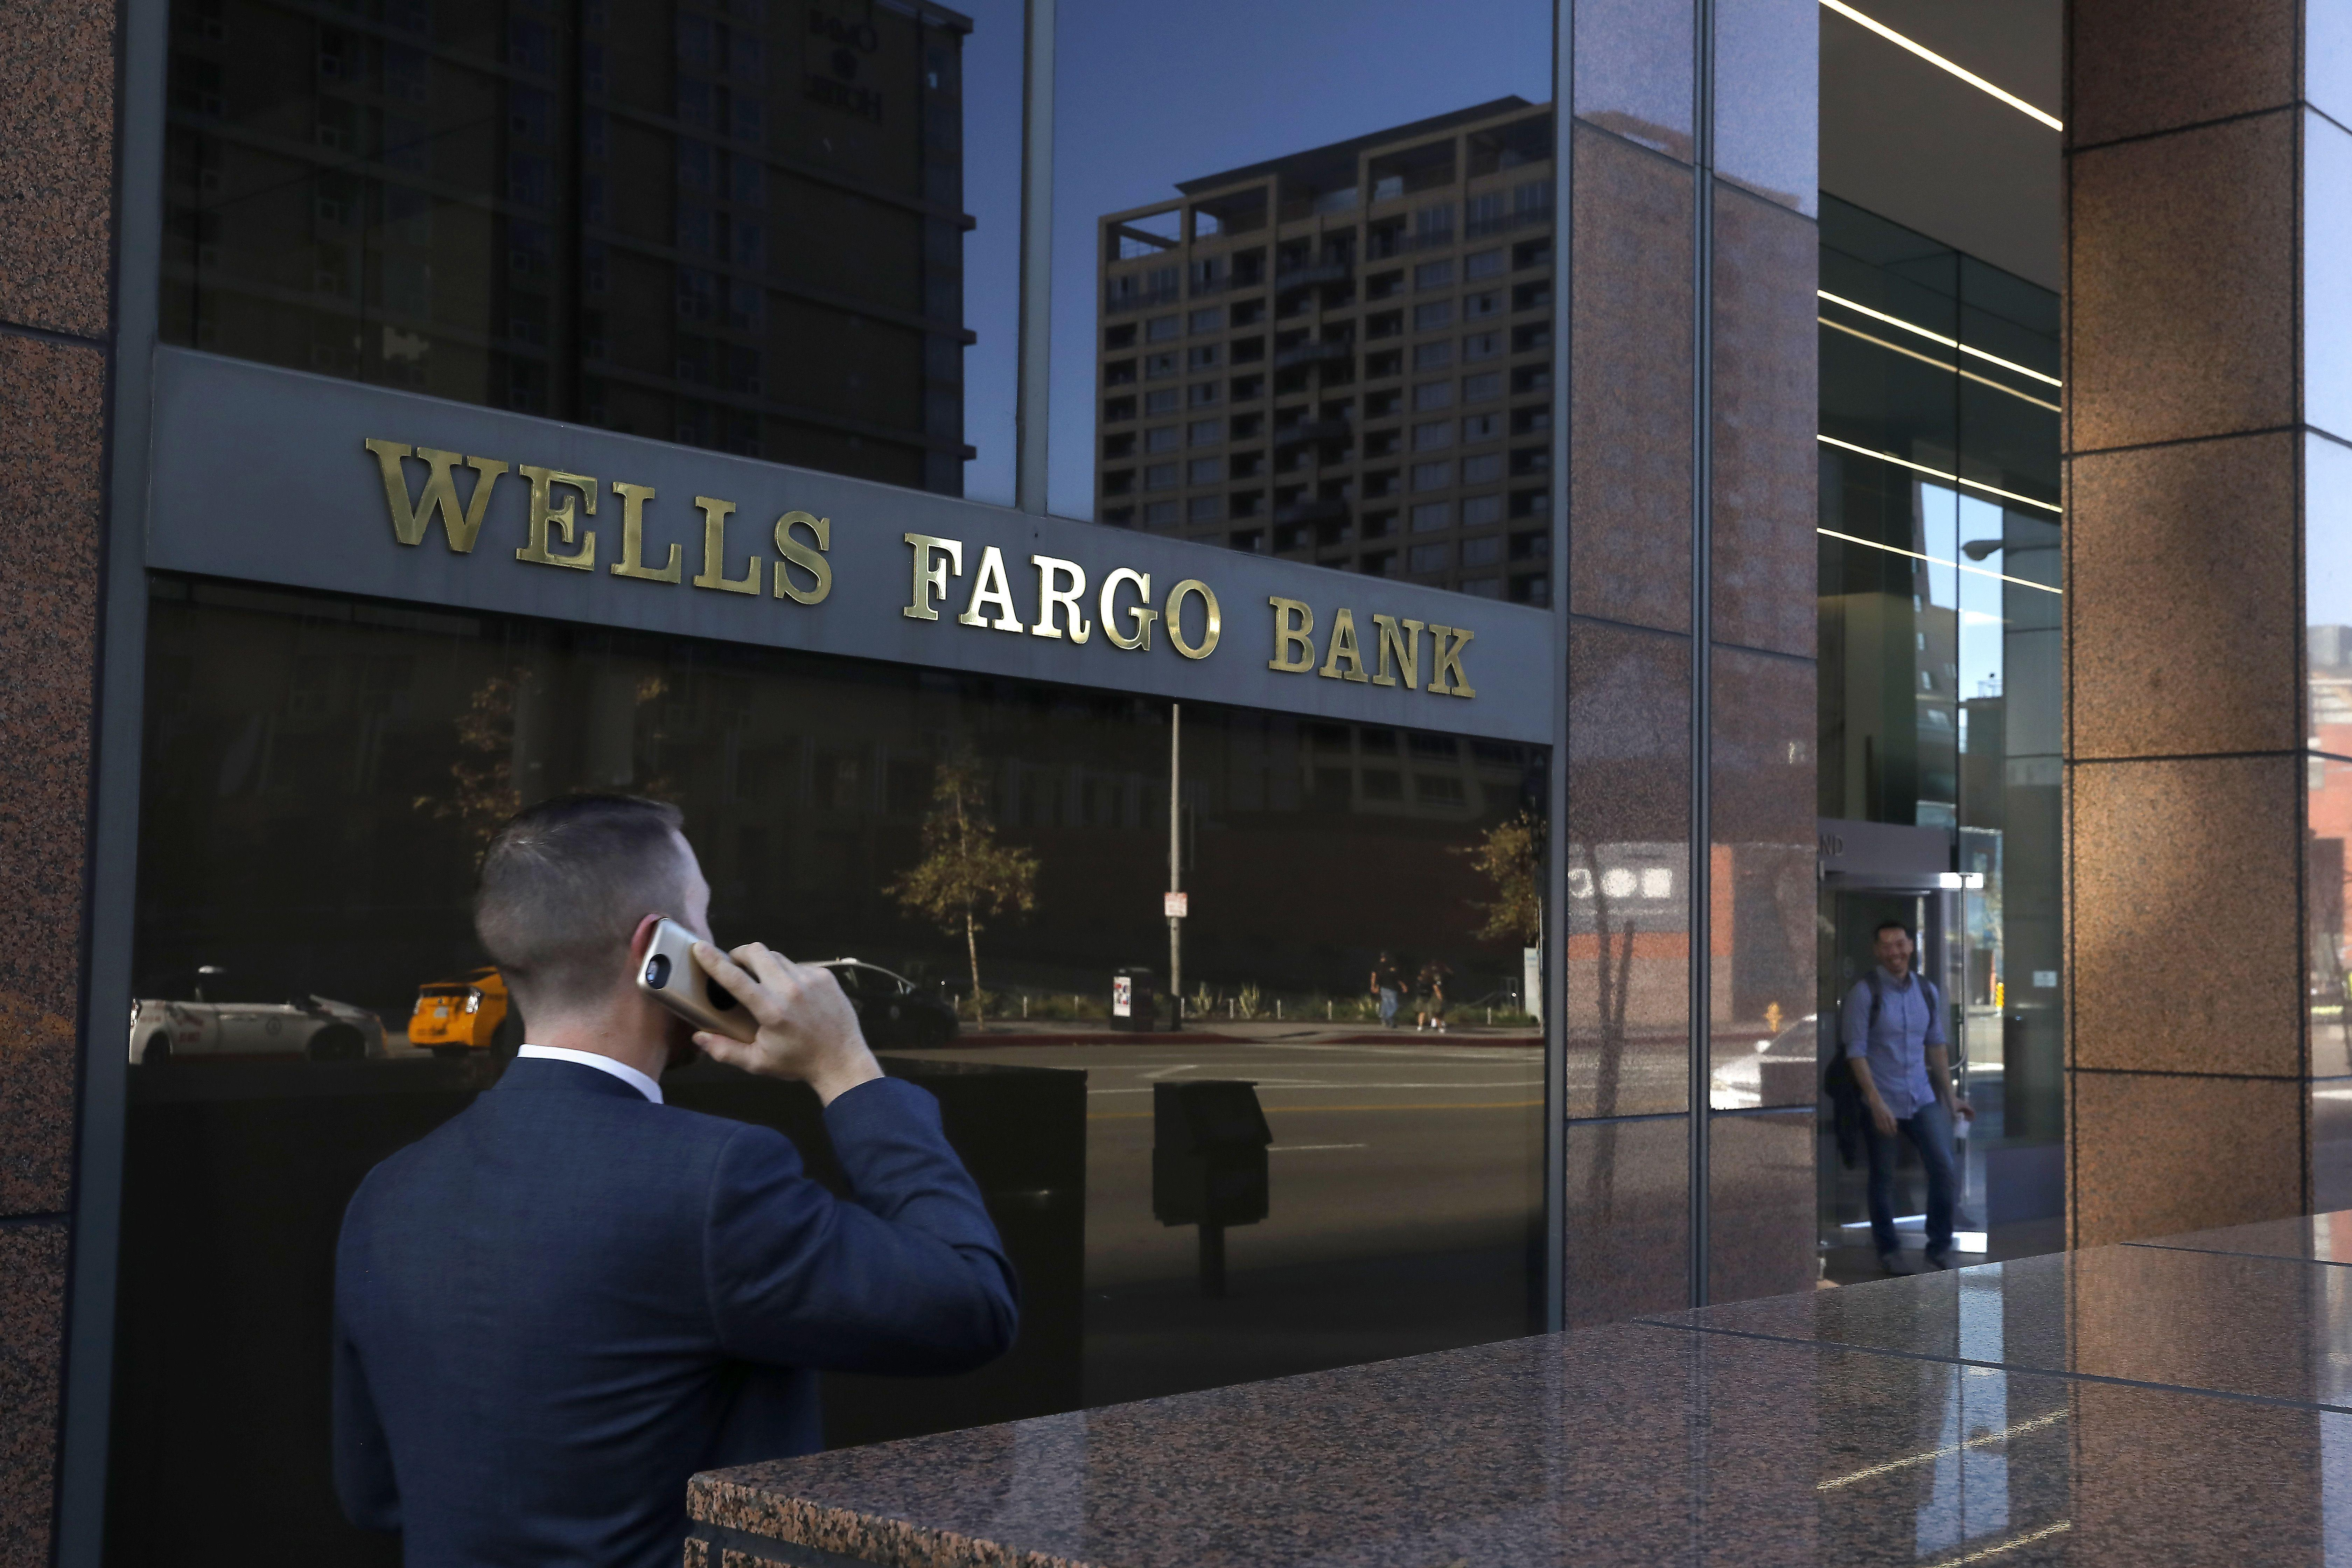 Wells Fargo says its error cost hundreds more people their